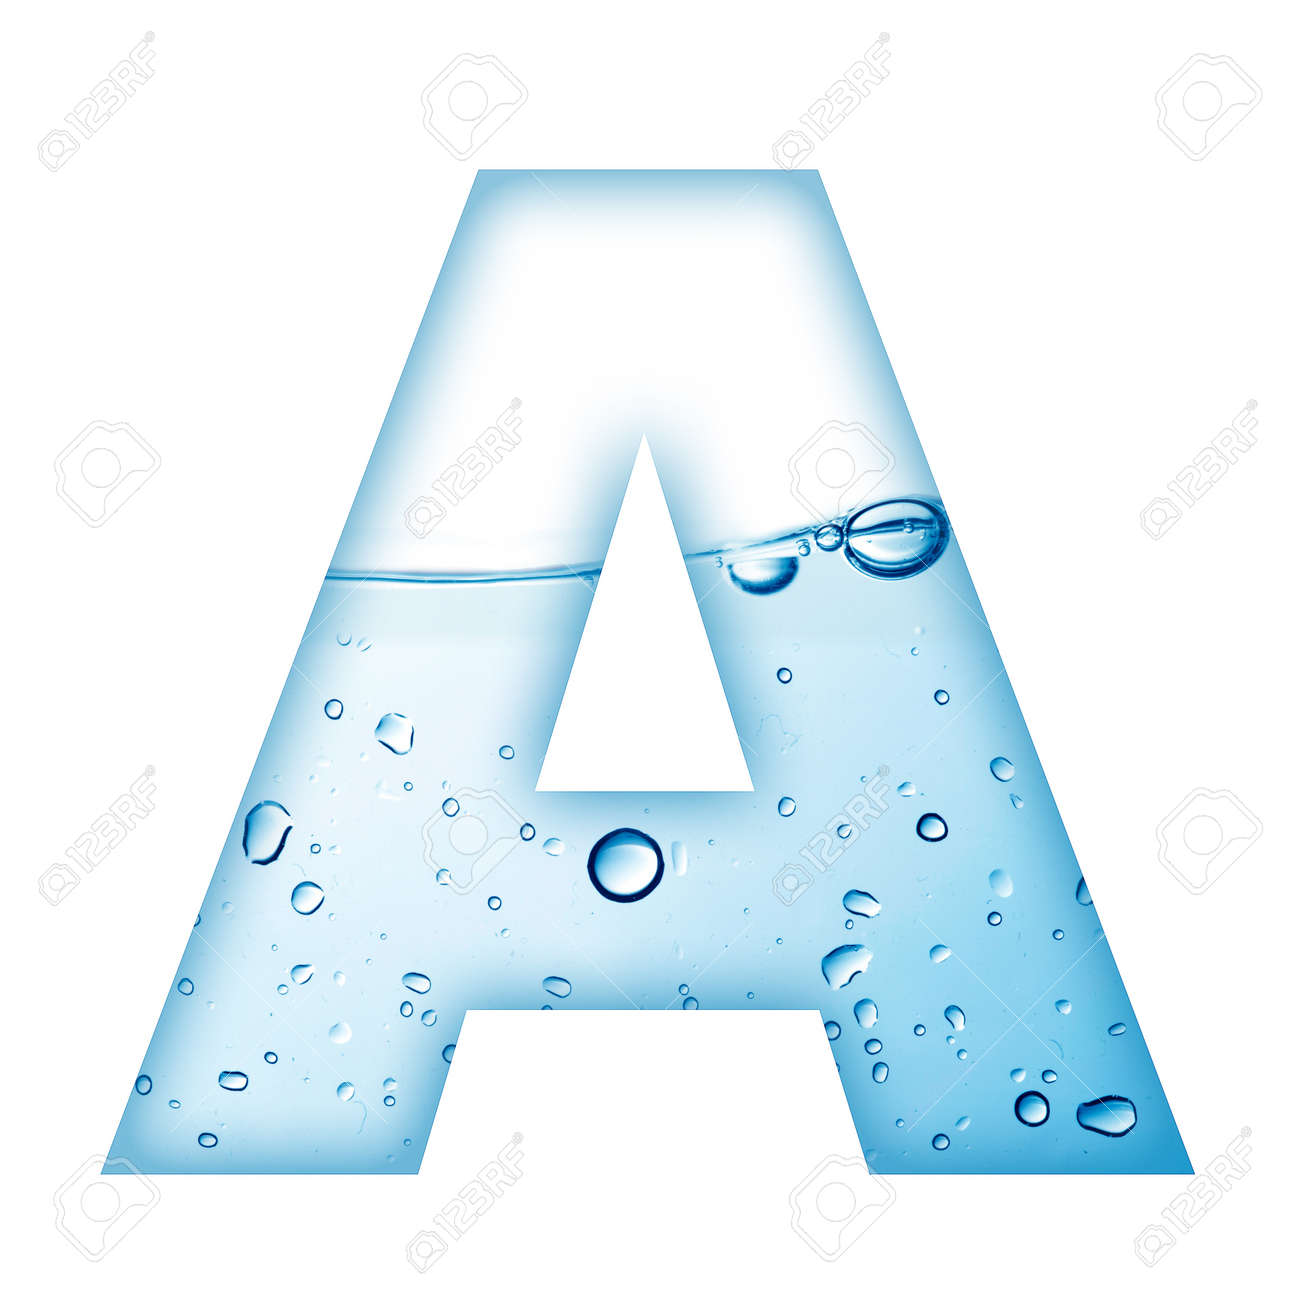 Alphabet Letter Made From Water And Bubble Letter A Stock